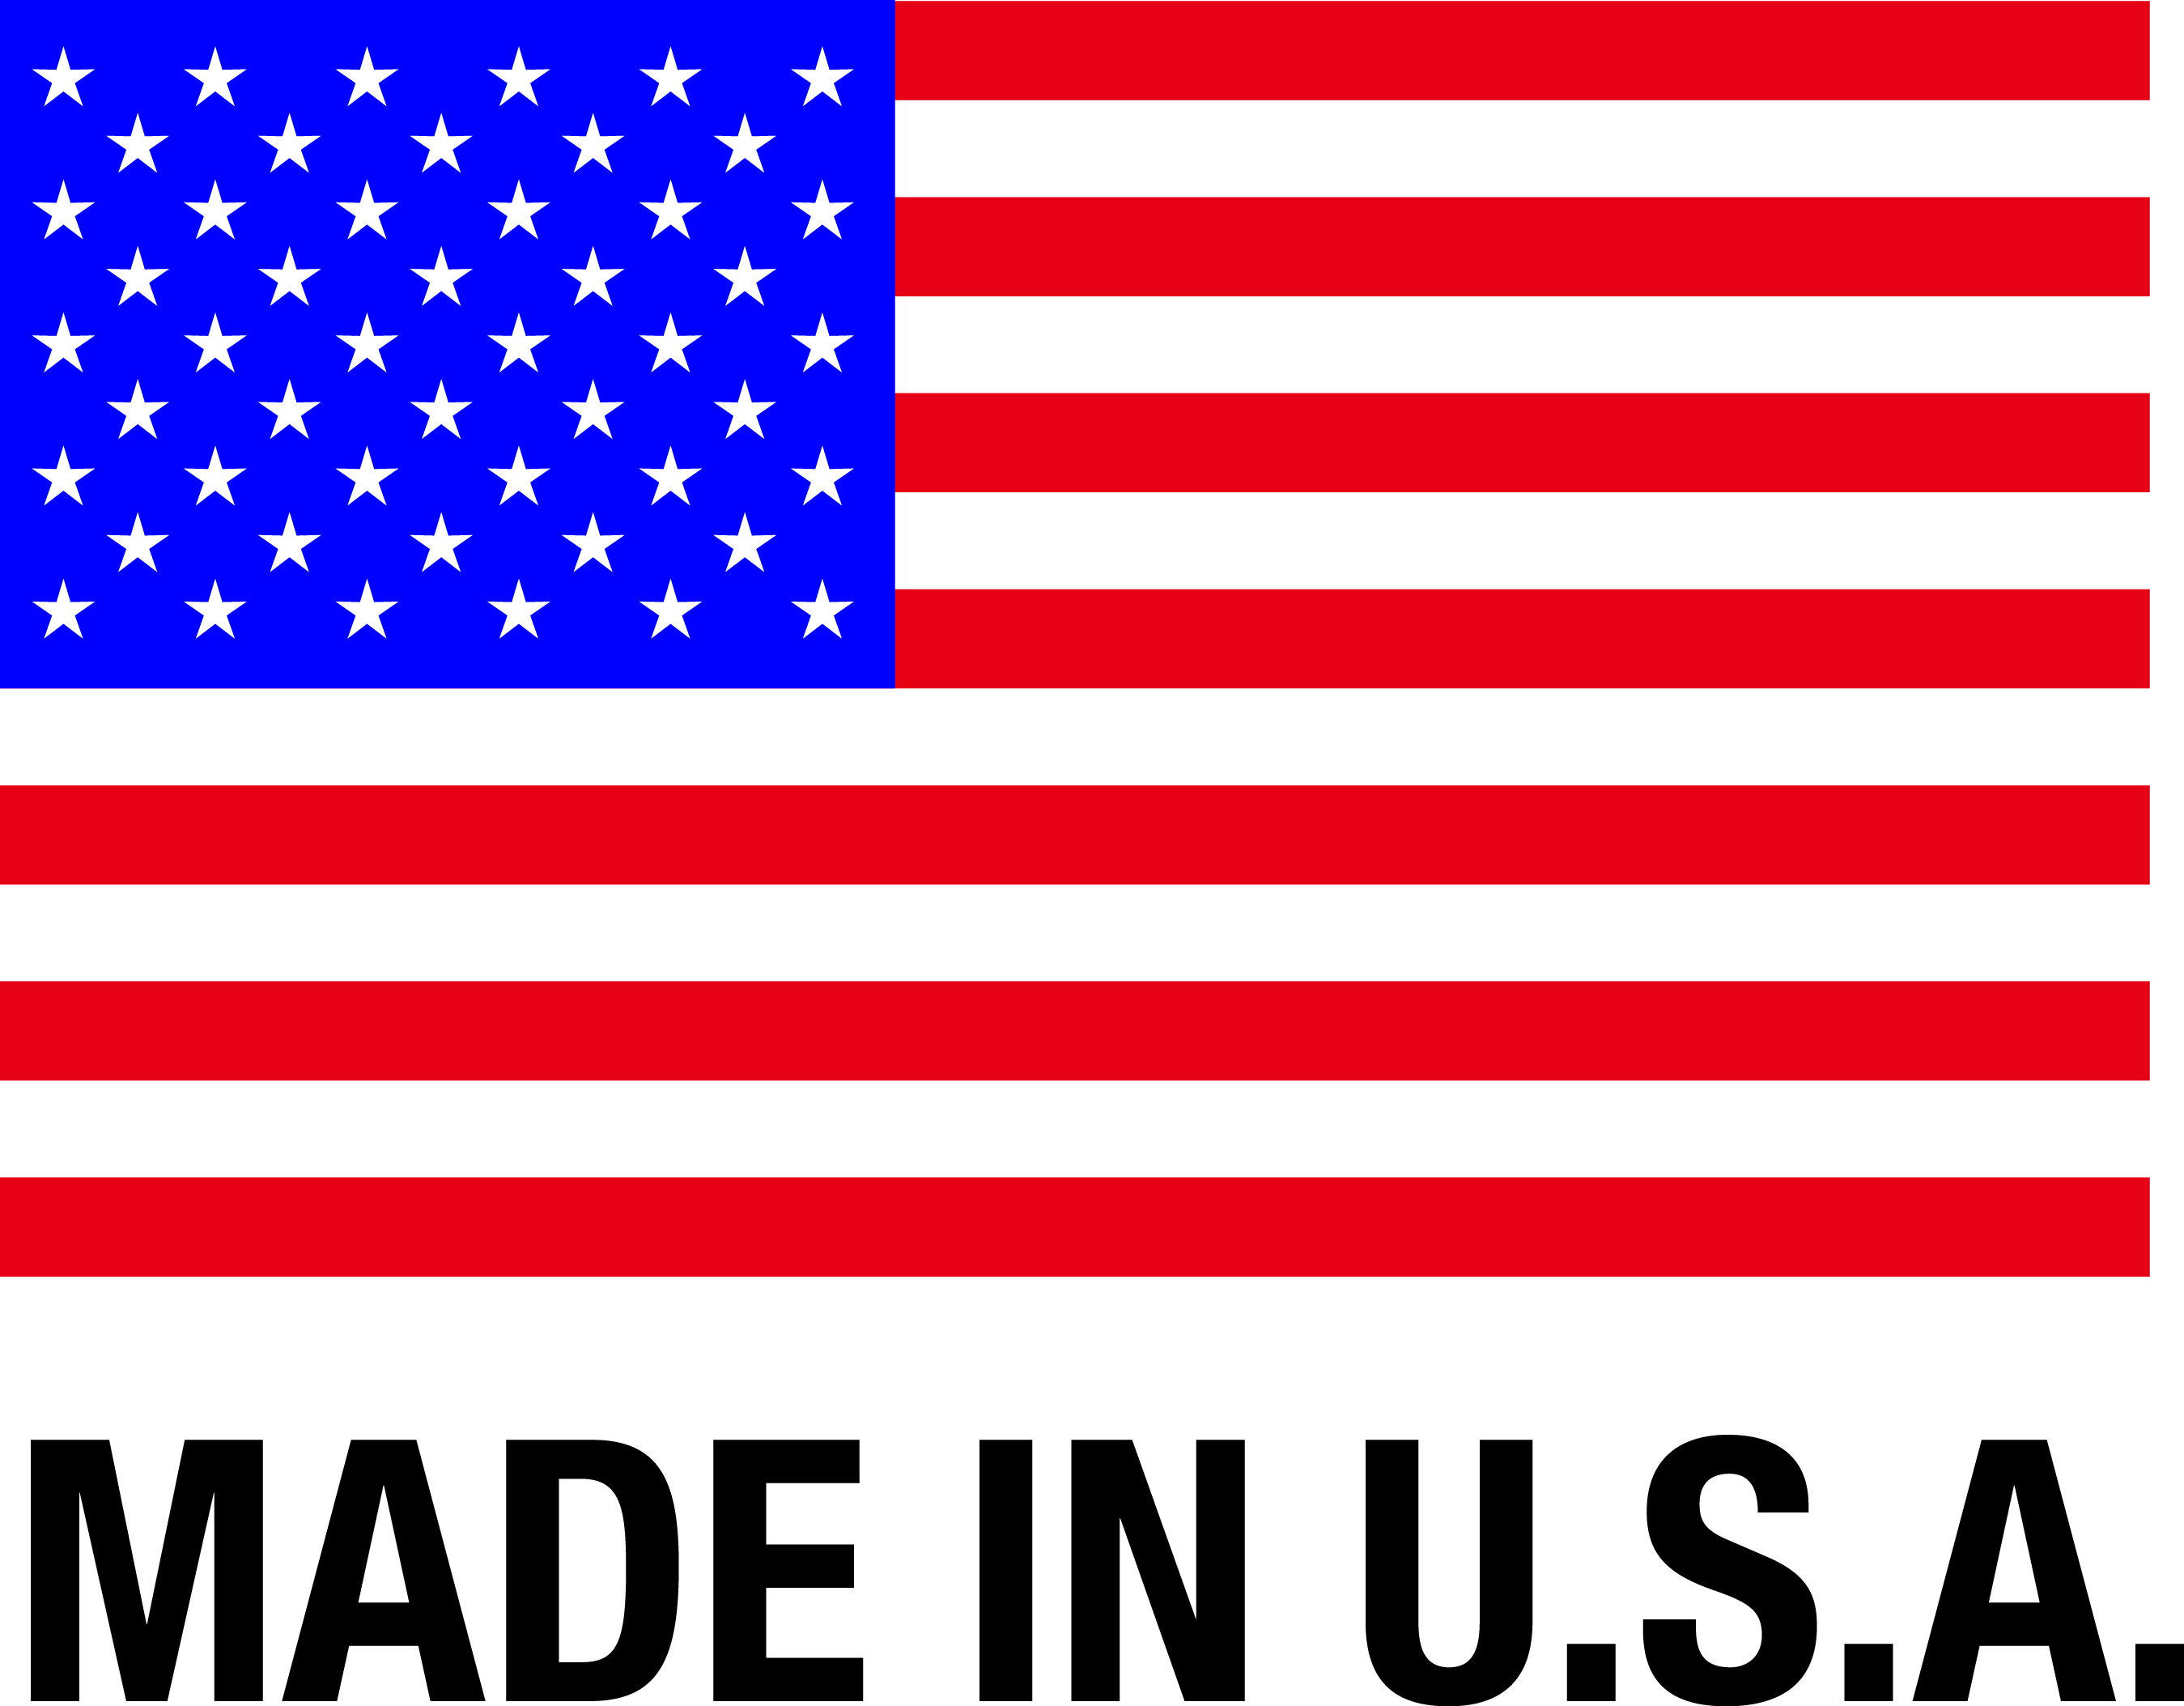 made in usa #A62525